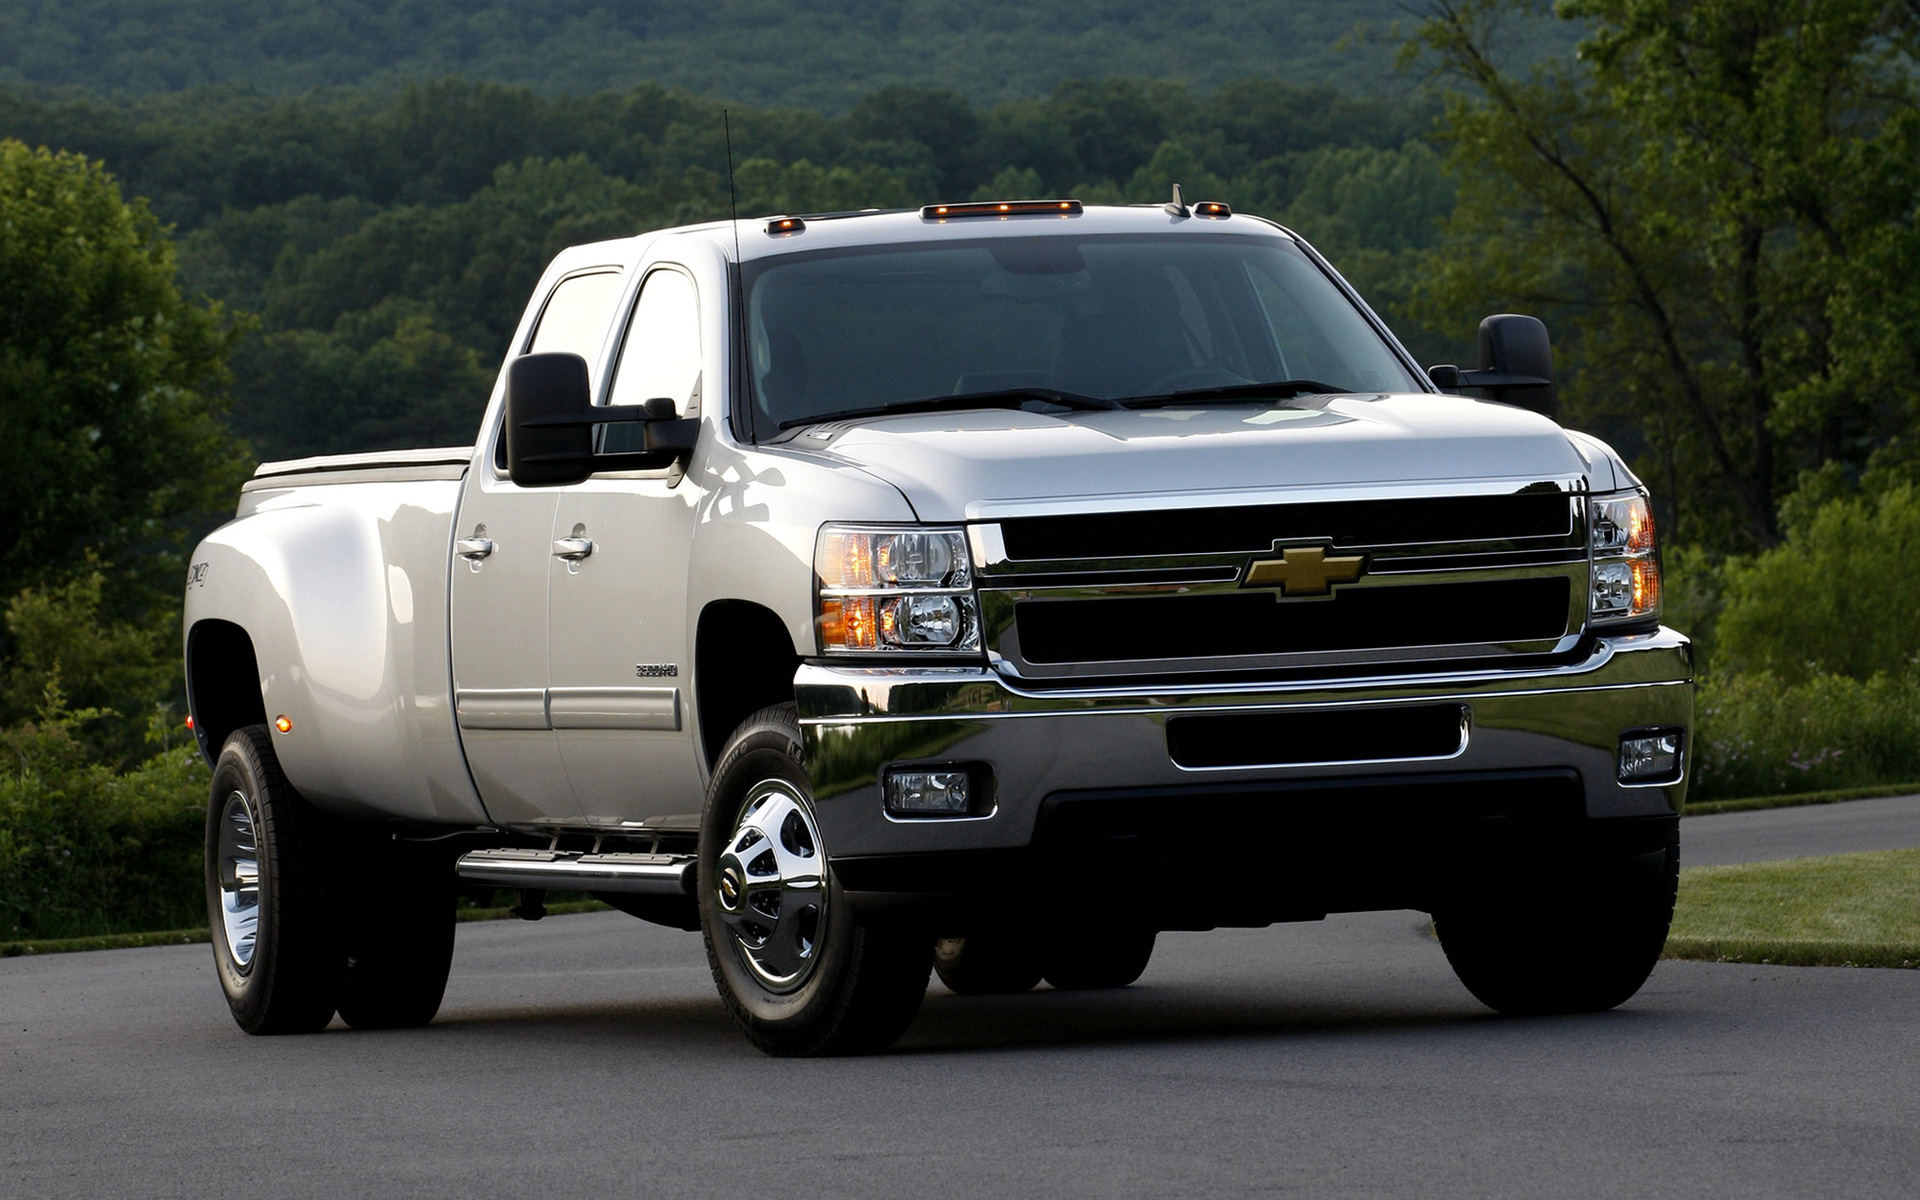 2010 Chevrolet Silverado 3500 HD Crew Cab - Wallpapers and ...